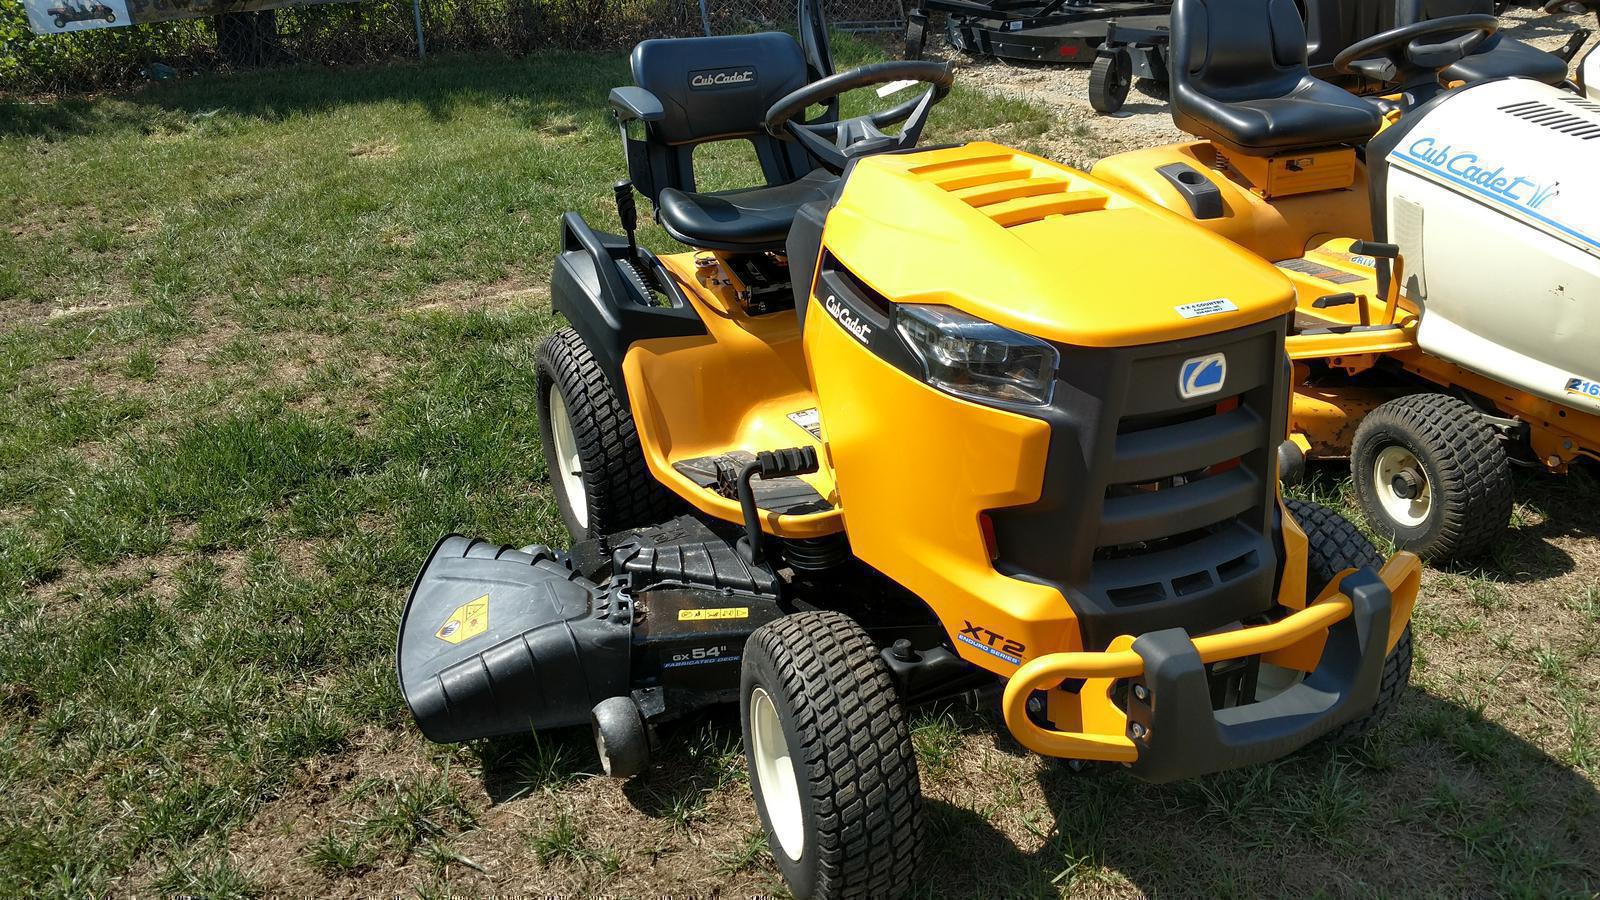 Inventory 4 x 4 Country & Cub Cadet